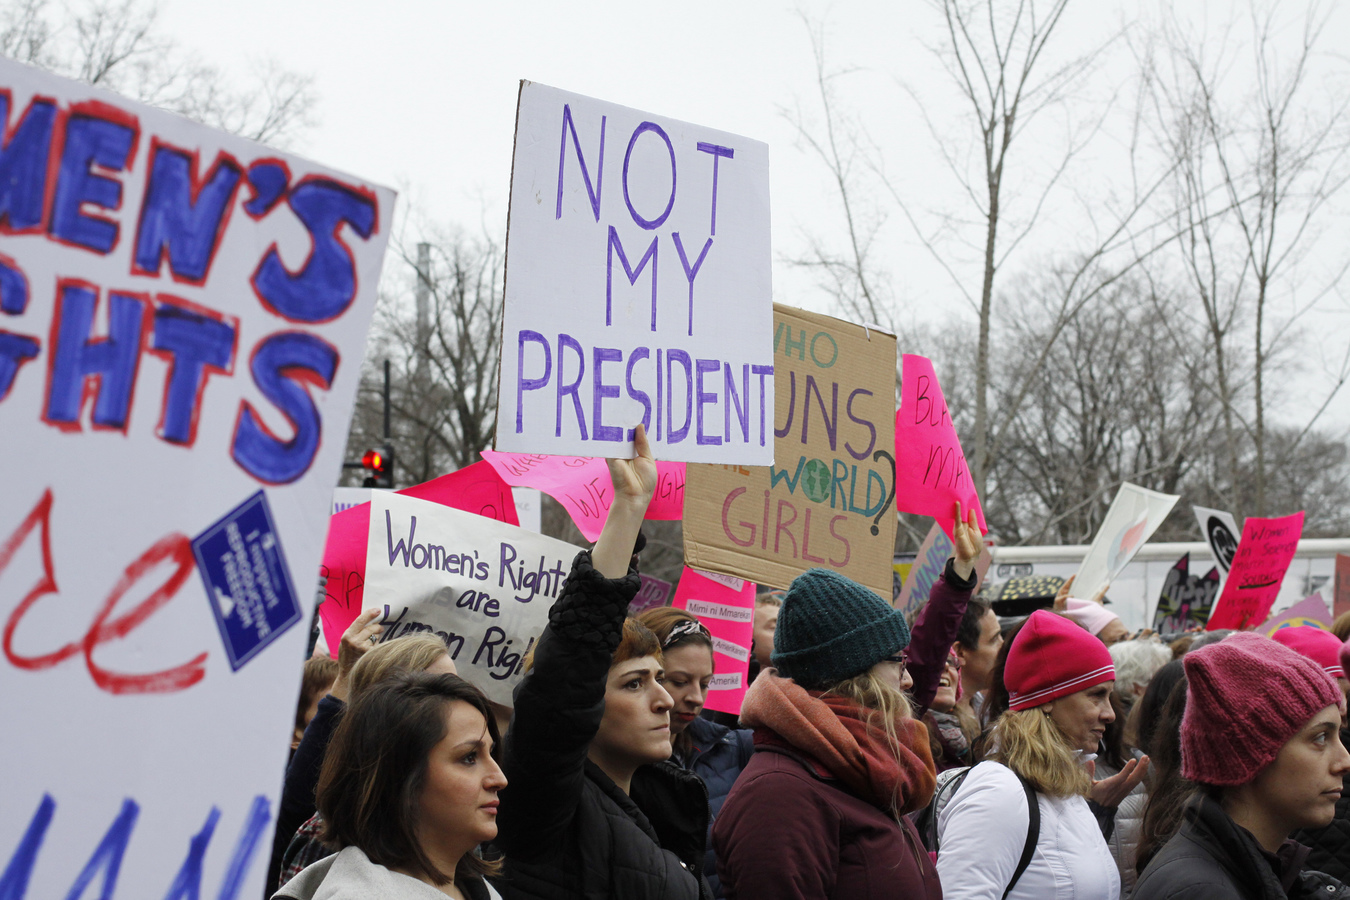 Women's March Washington DC 1/21/17